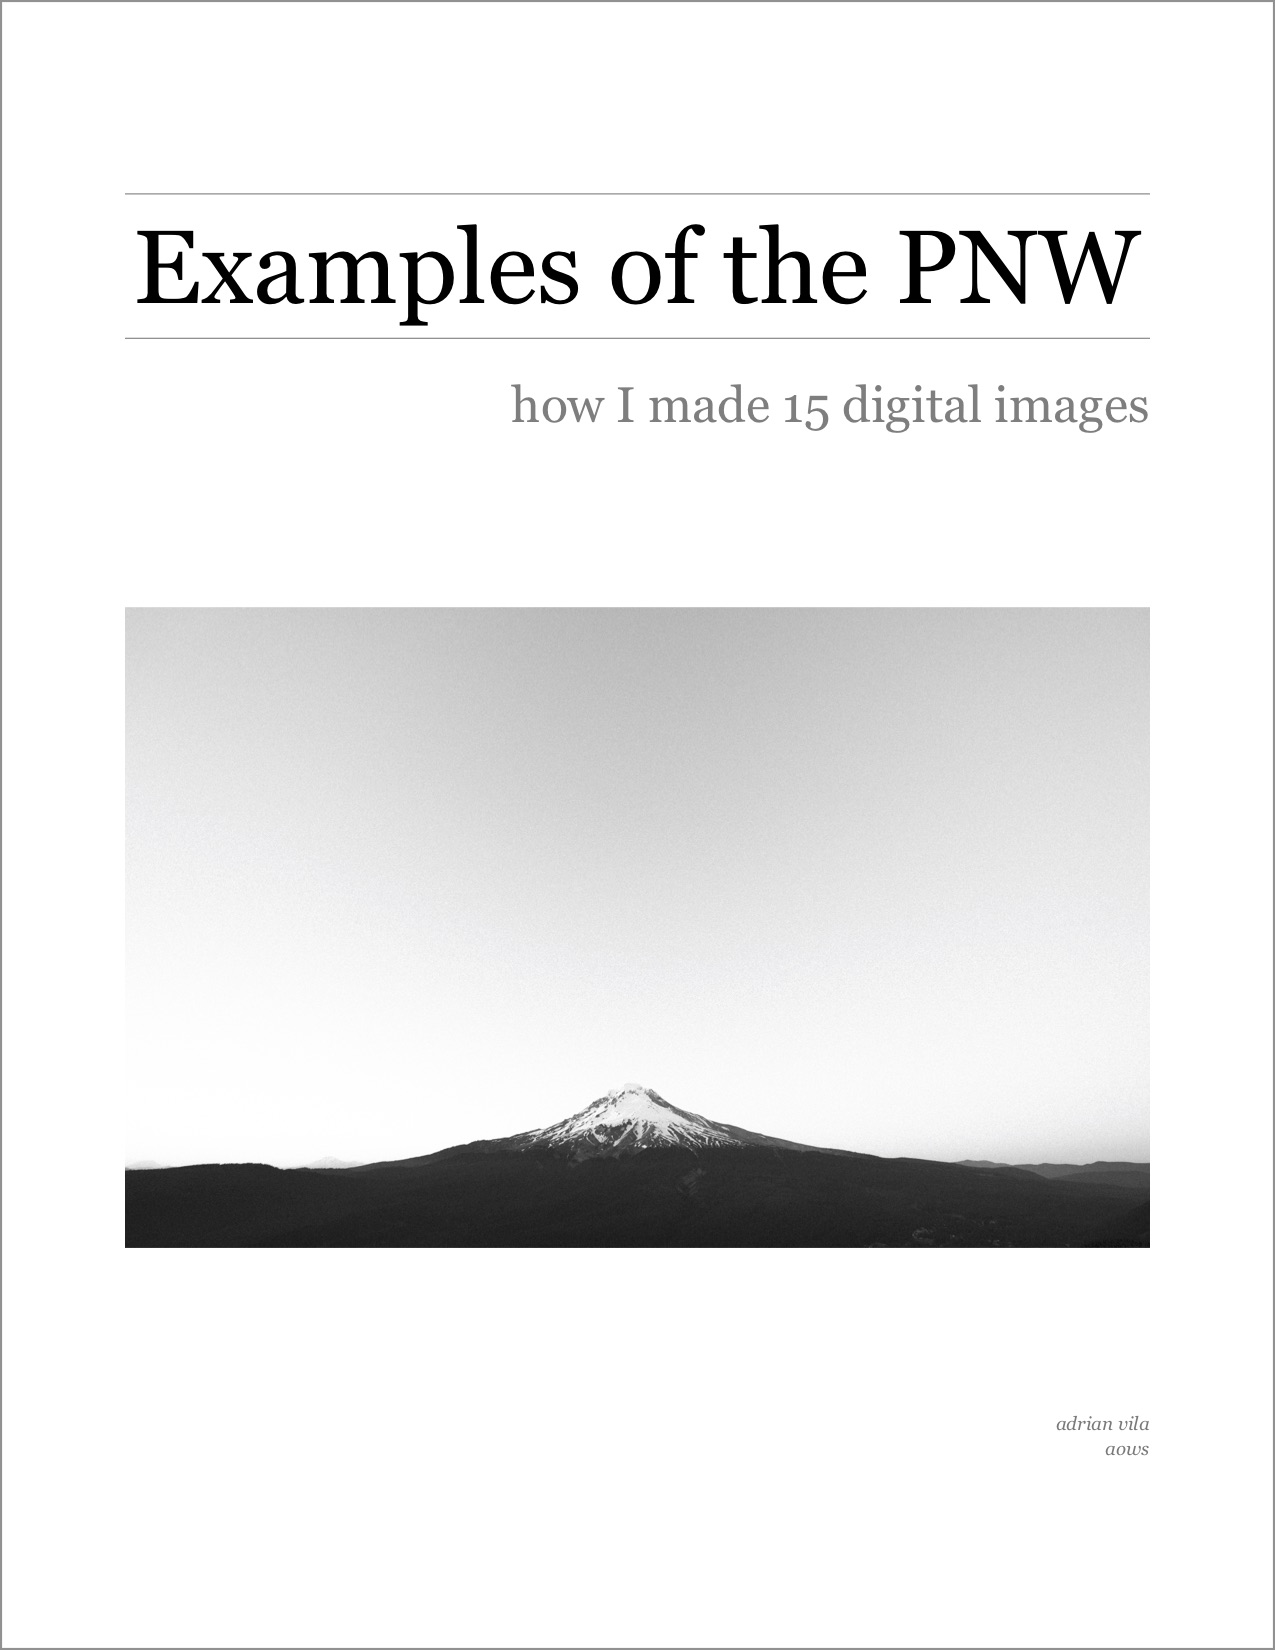 examples of the pnw - how I made 15 digital imagespublished: march 2018ebook, 78 pages